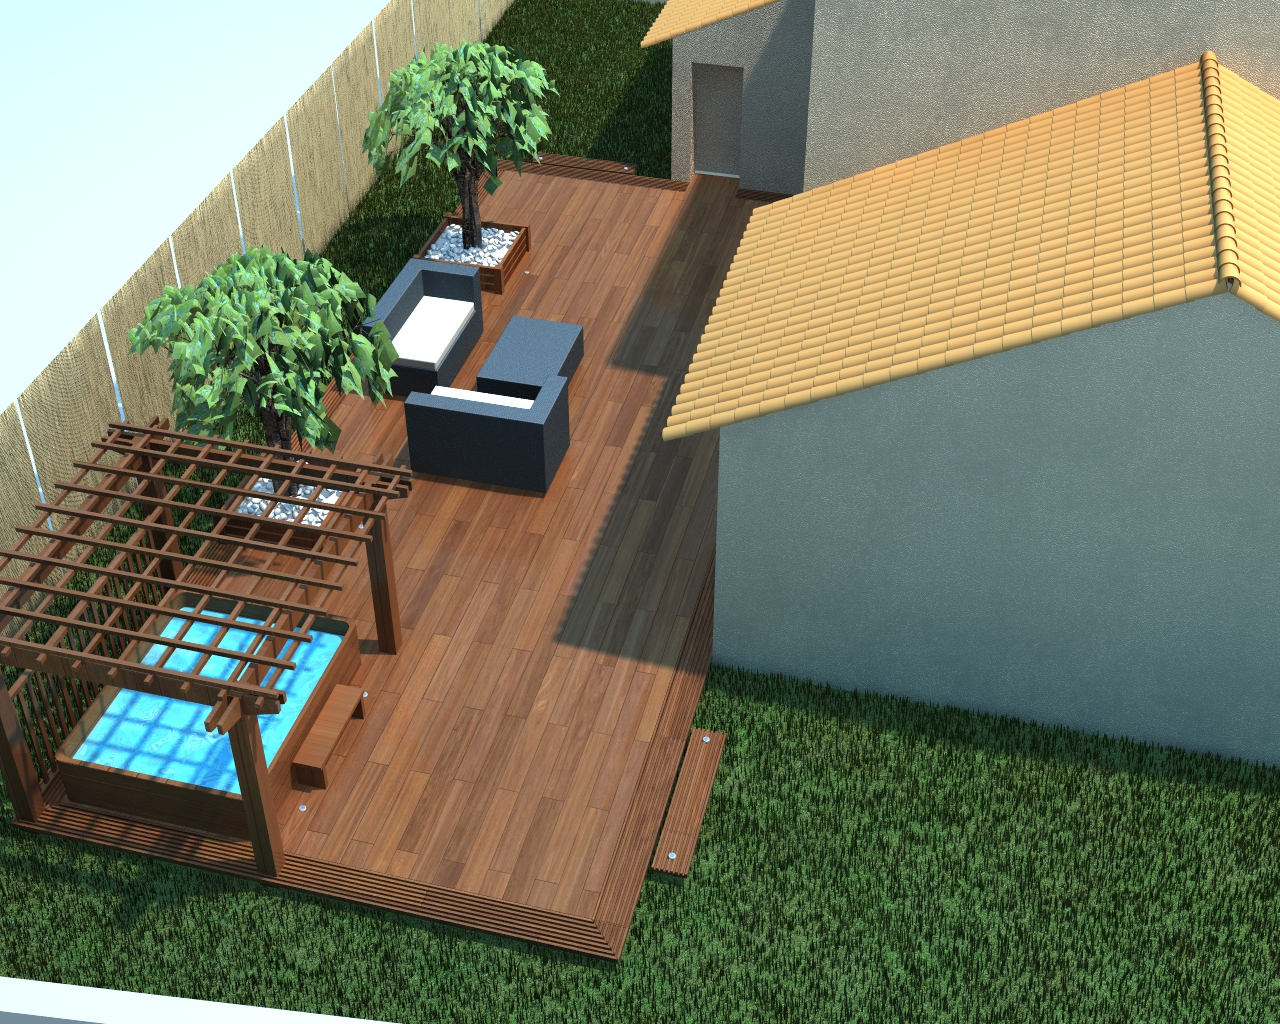 Conception terrasse et am nagement spa et salon de jardin for Amenagement terrasse de jardin